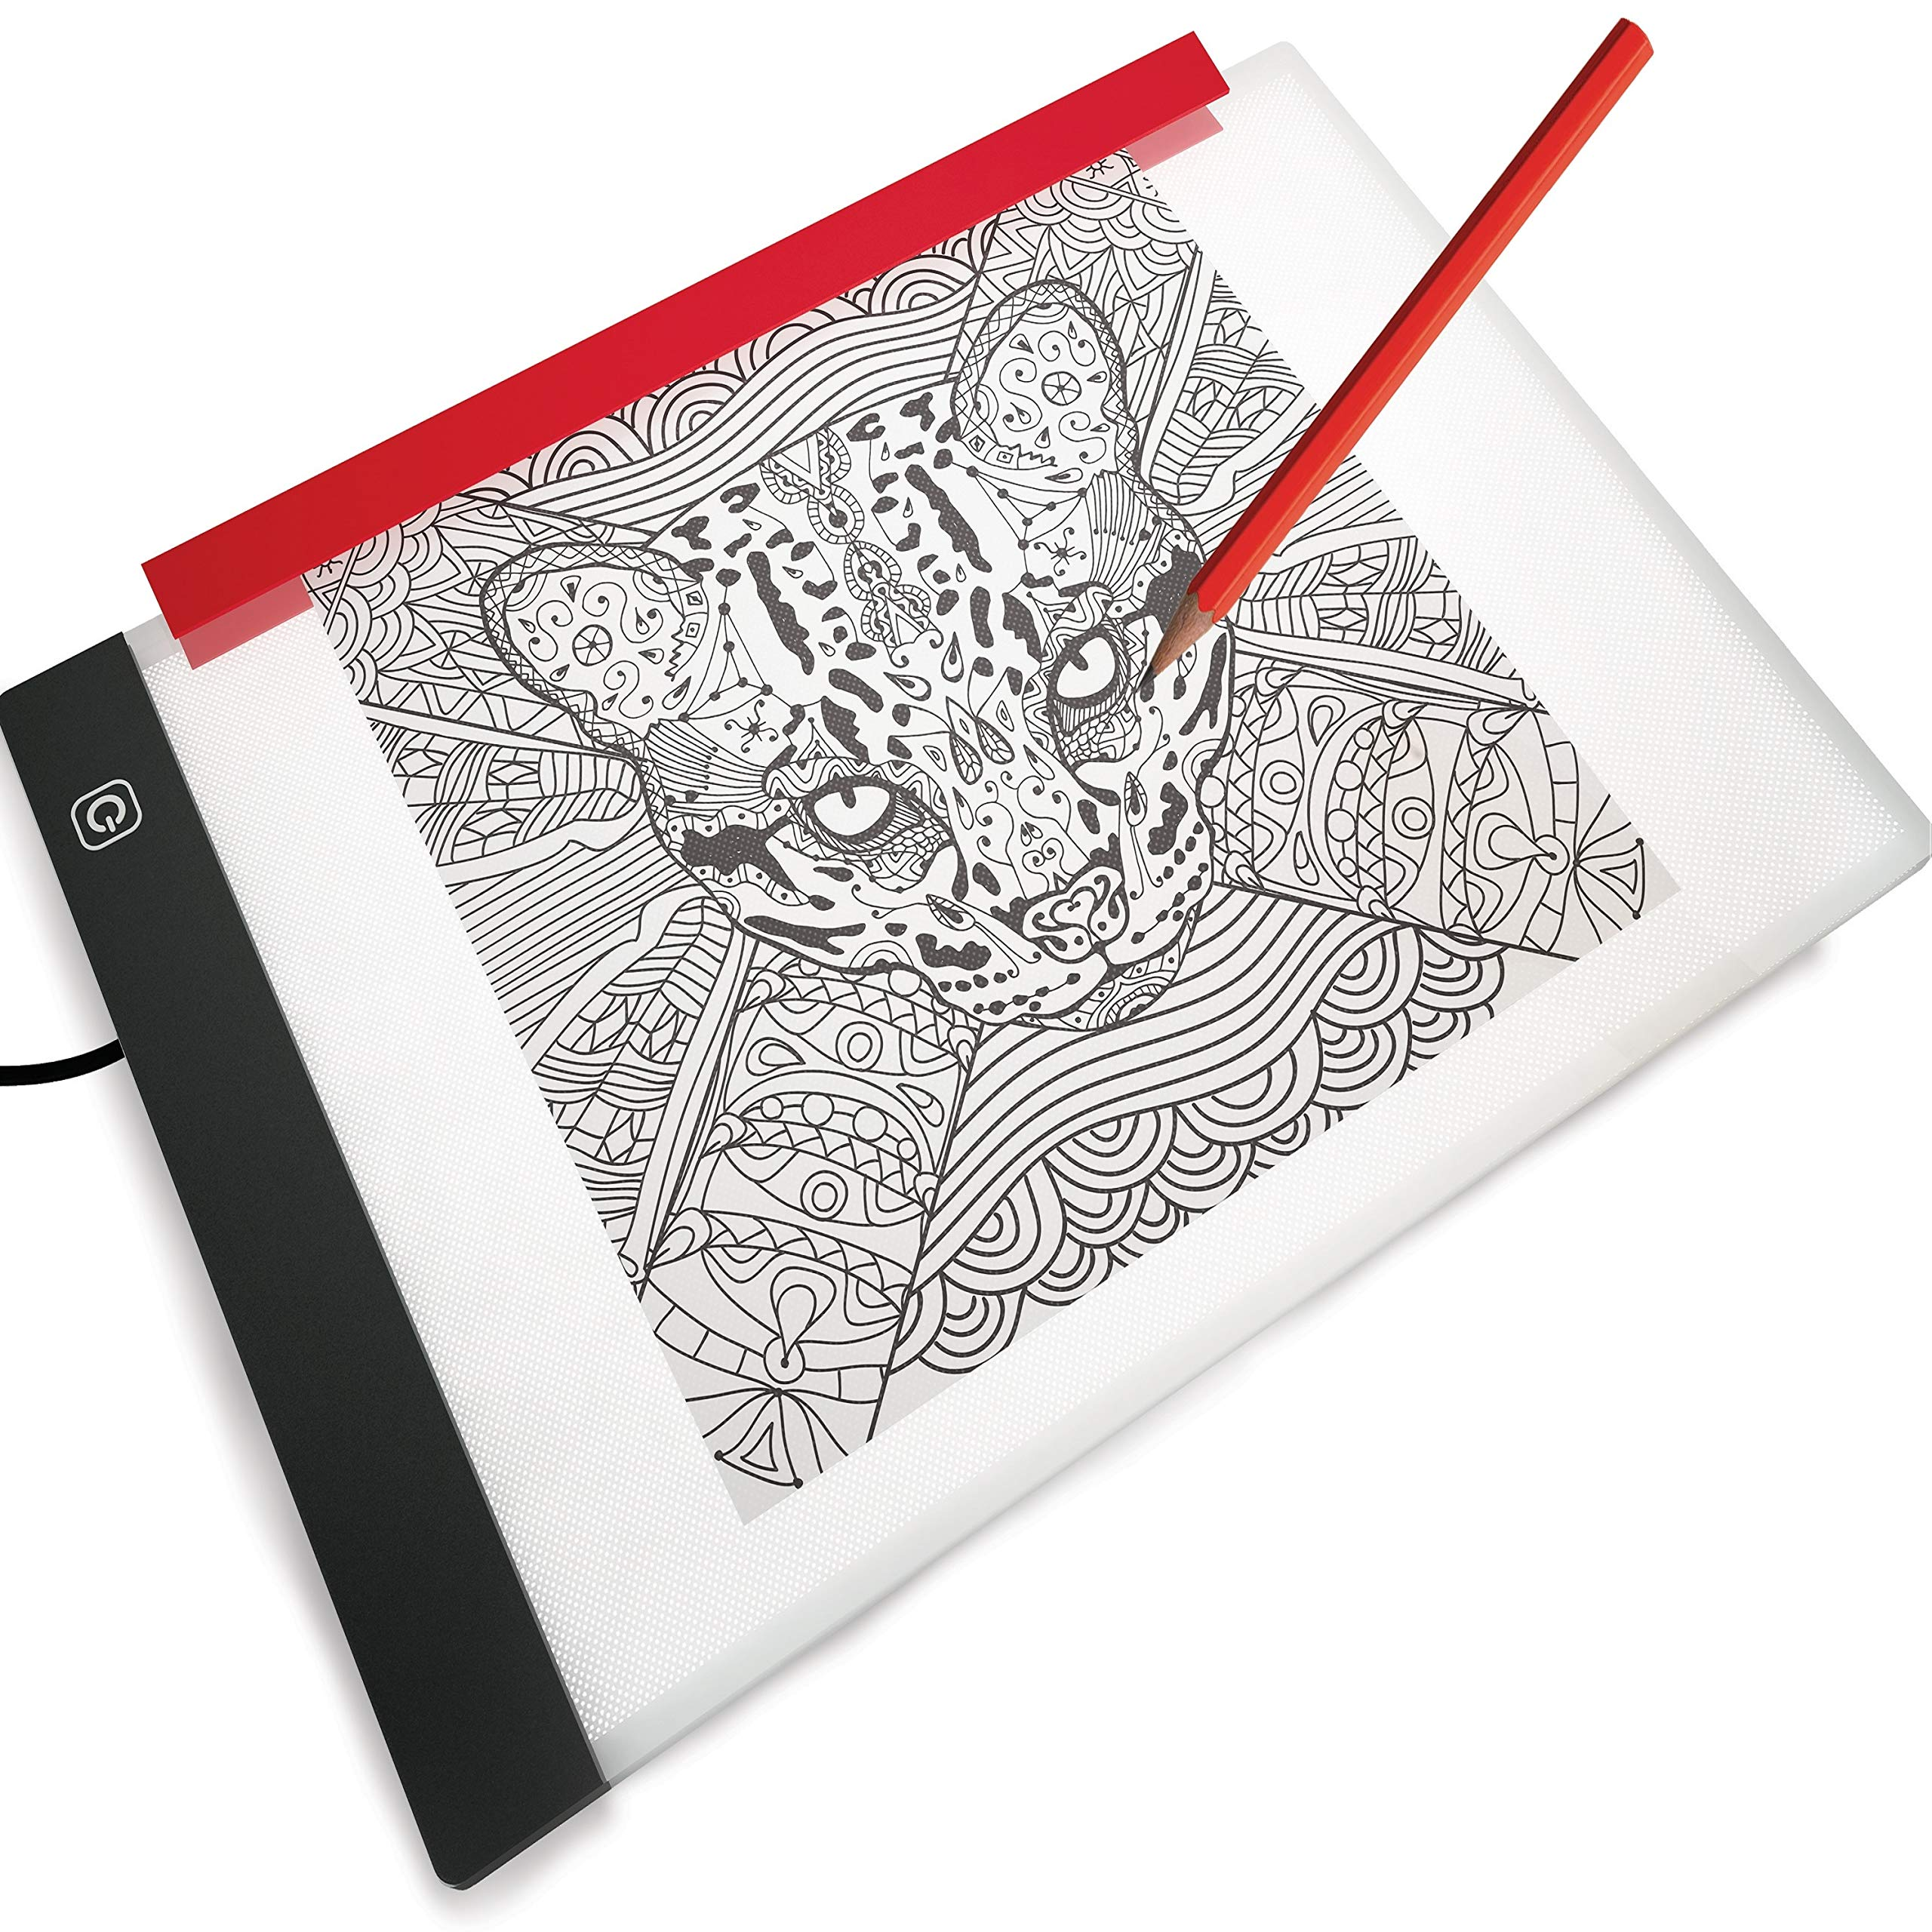 LED Light Box for Drawing and Tracing Portable Ultra-Thin Tracing Light Pad by Illuminati USB Powered A4 Bright Trace Table for Artists - Comes with Dimmable Brightness - Tracing Paper - Holder Clip by Illuminati